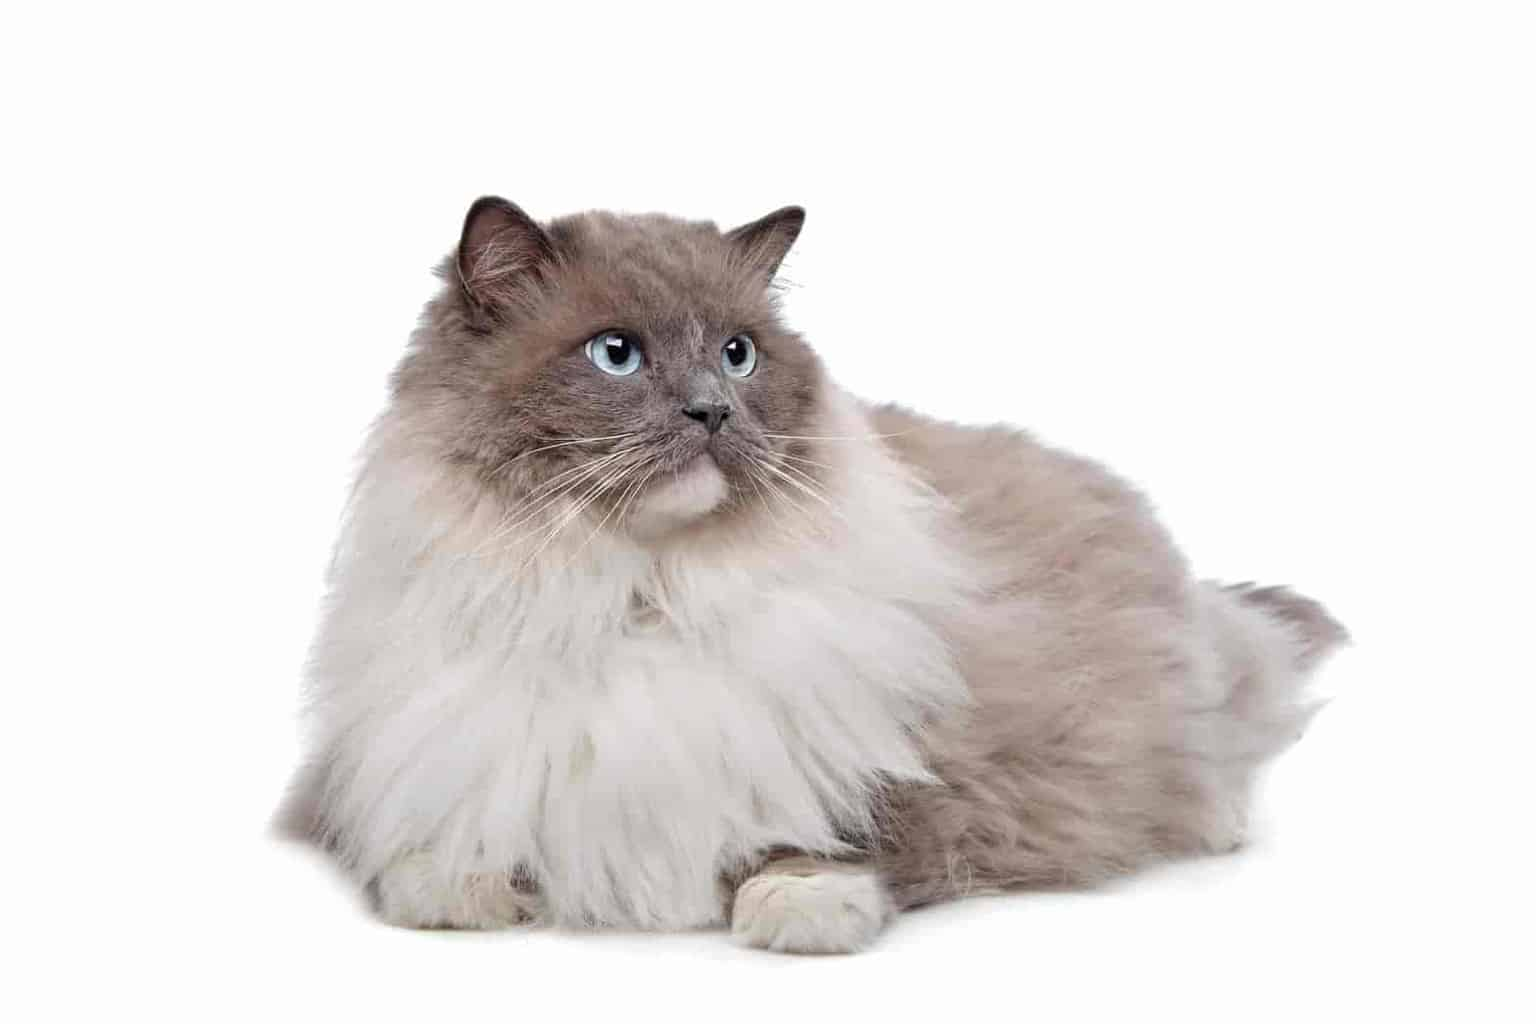 Do ragdolls get fluffier with age